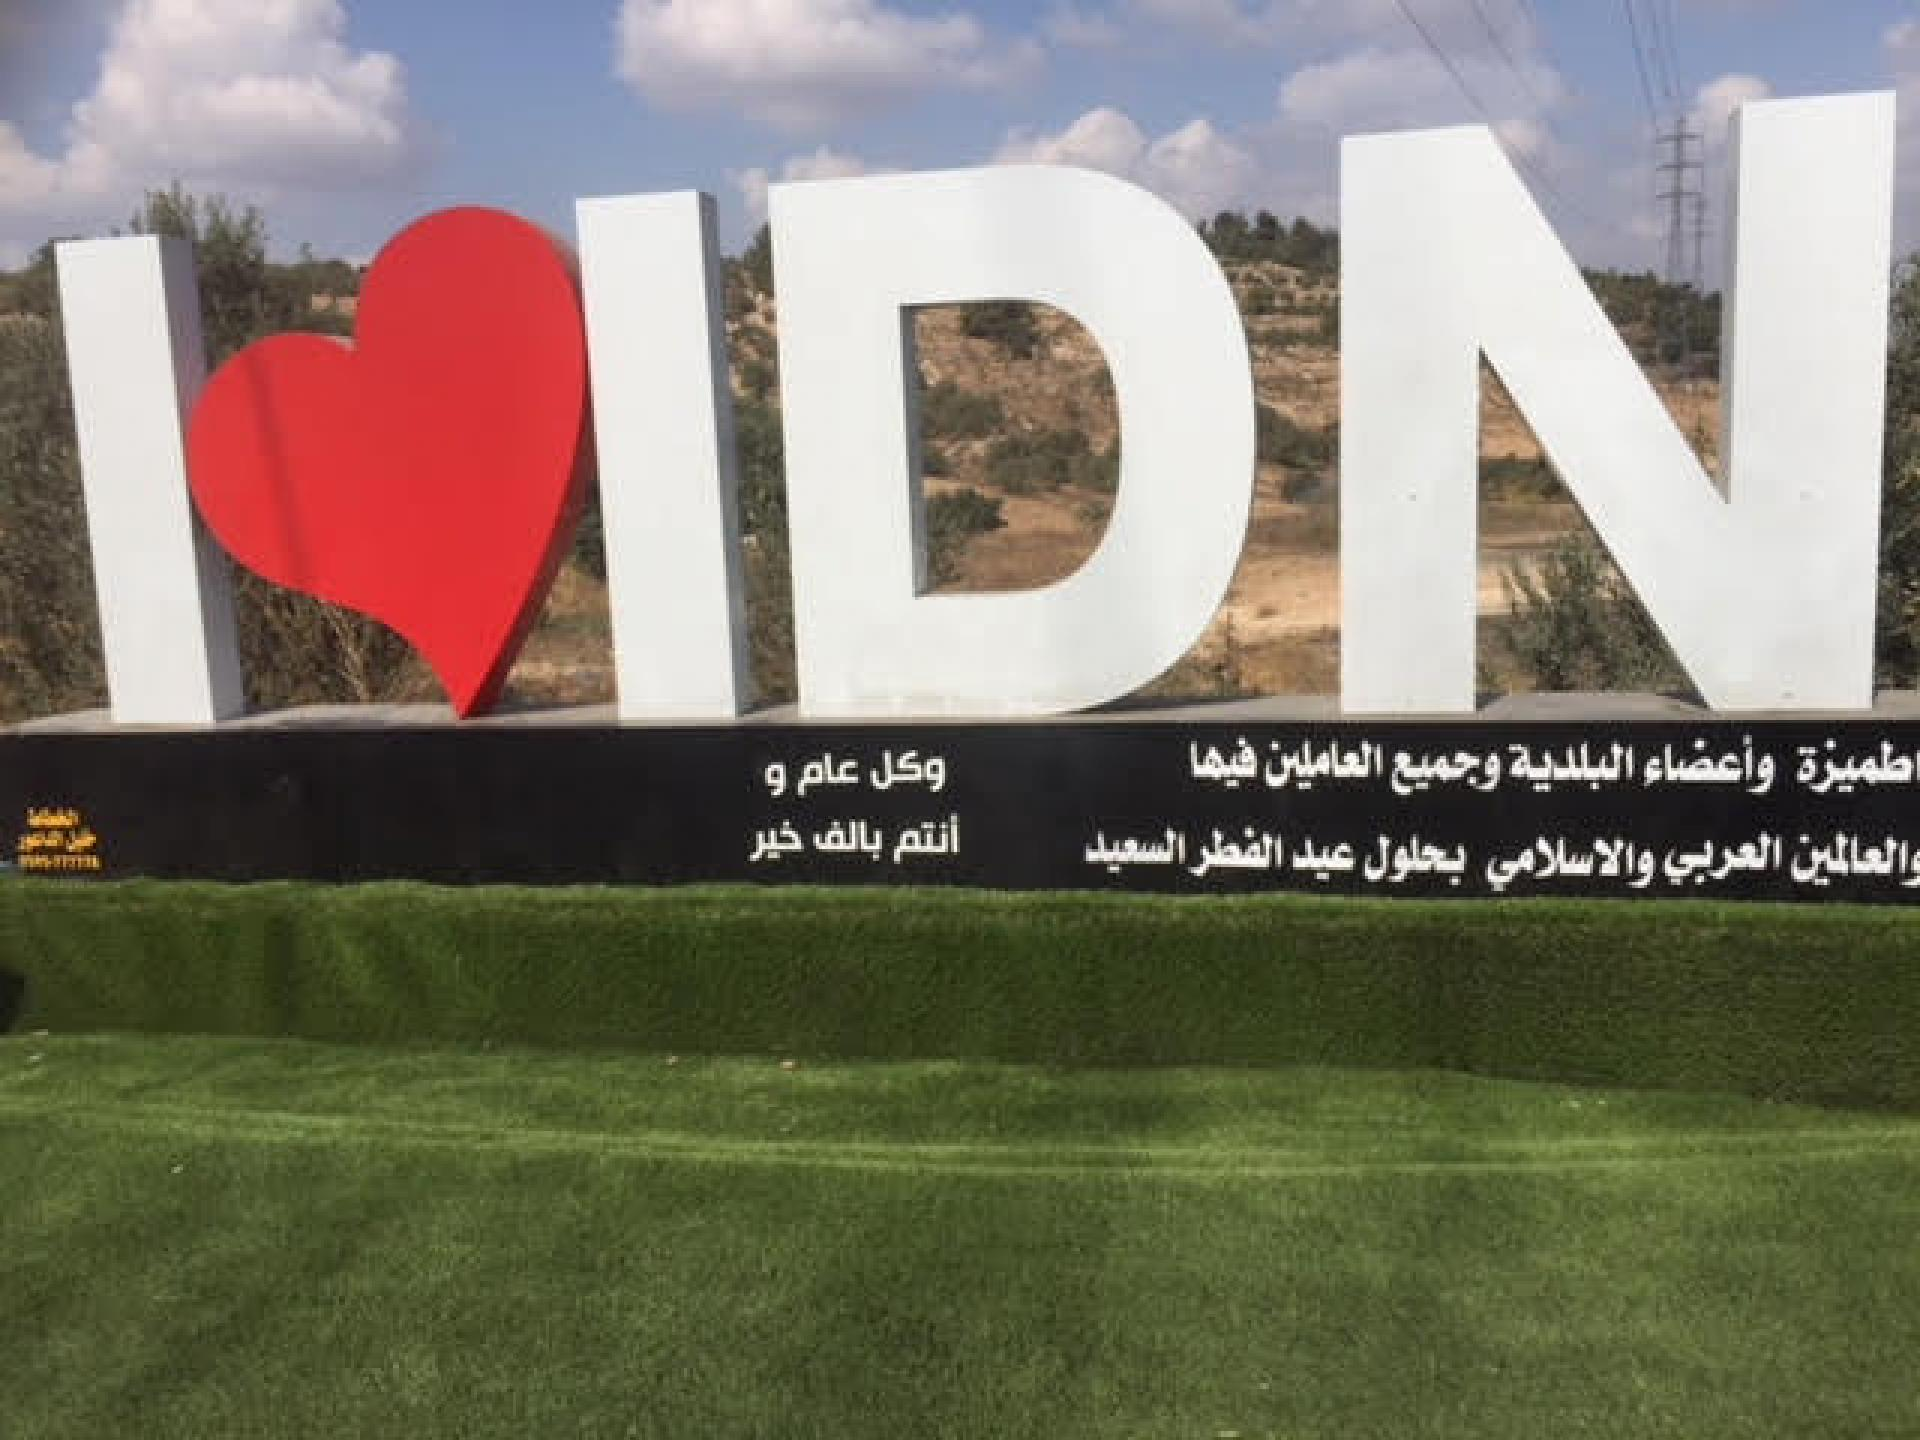 The sign at the entance to Idna